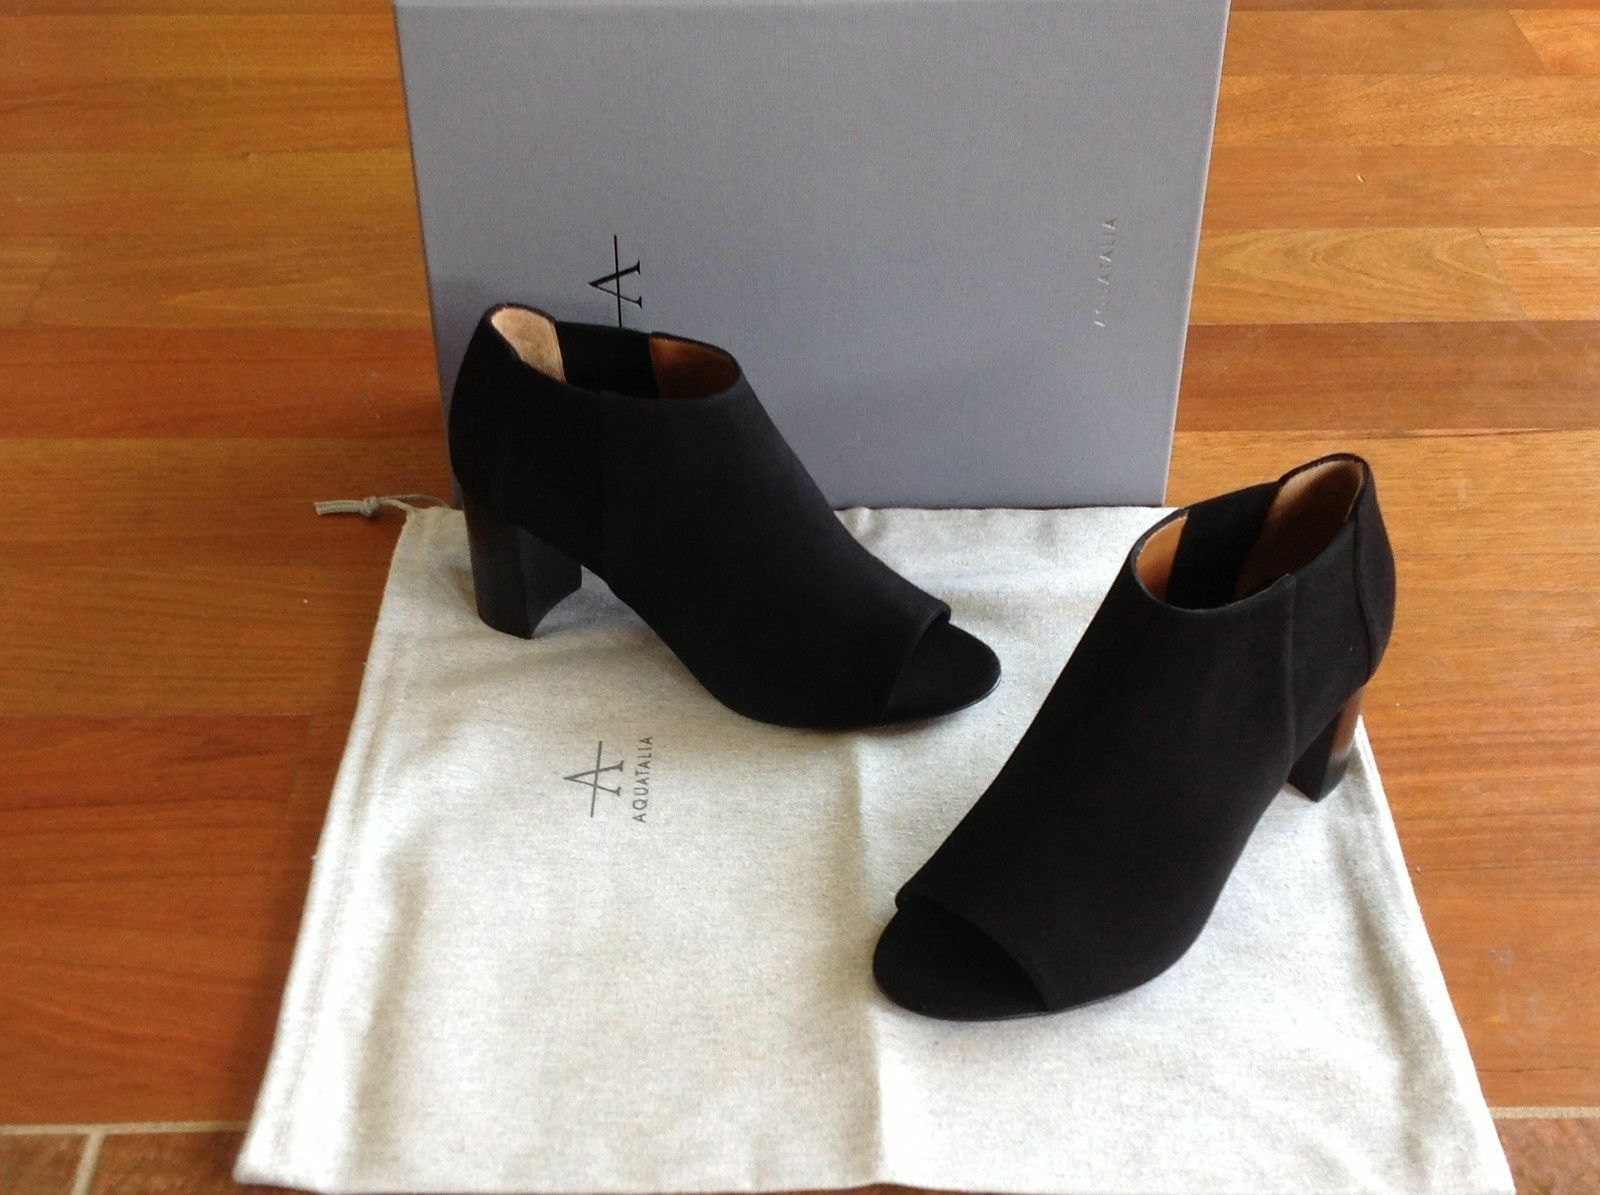 495-Aquatalia Shaw Suede Ankle Open-toe Peep-toe Booties-black-sz 6.5-NIB